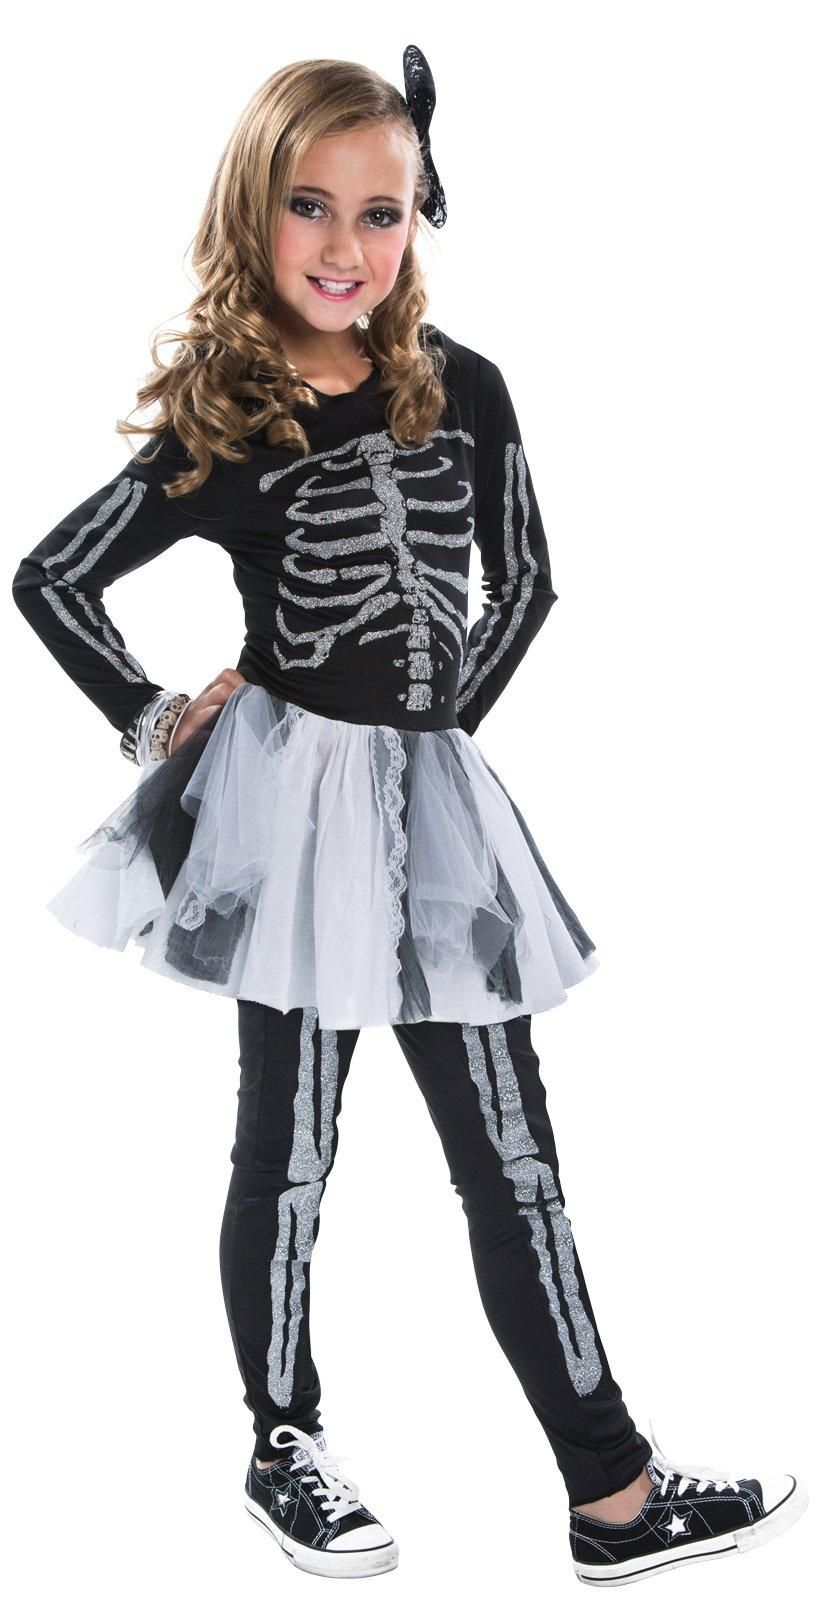 Silver Skeleton Costume for Kids from